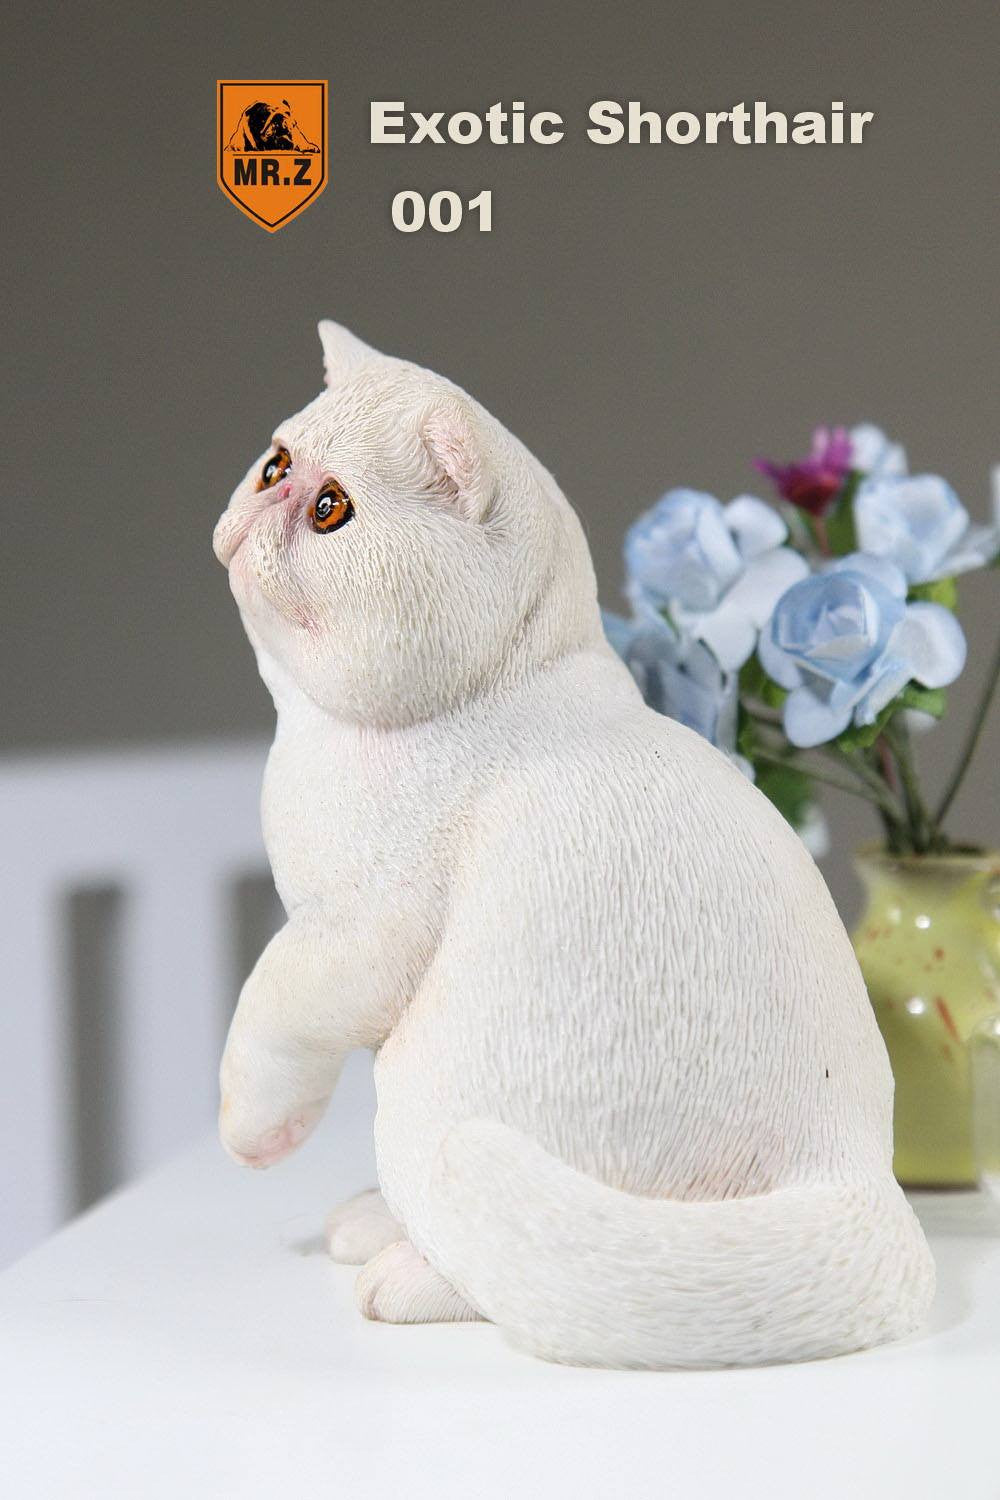 MR.Z - Real Animal Series No.8 - 1/6th Scale Exotic Shorthair Cat (Garfield) 001-005 - Marvelous Toys - 9